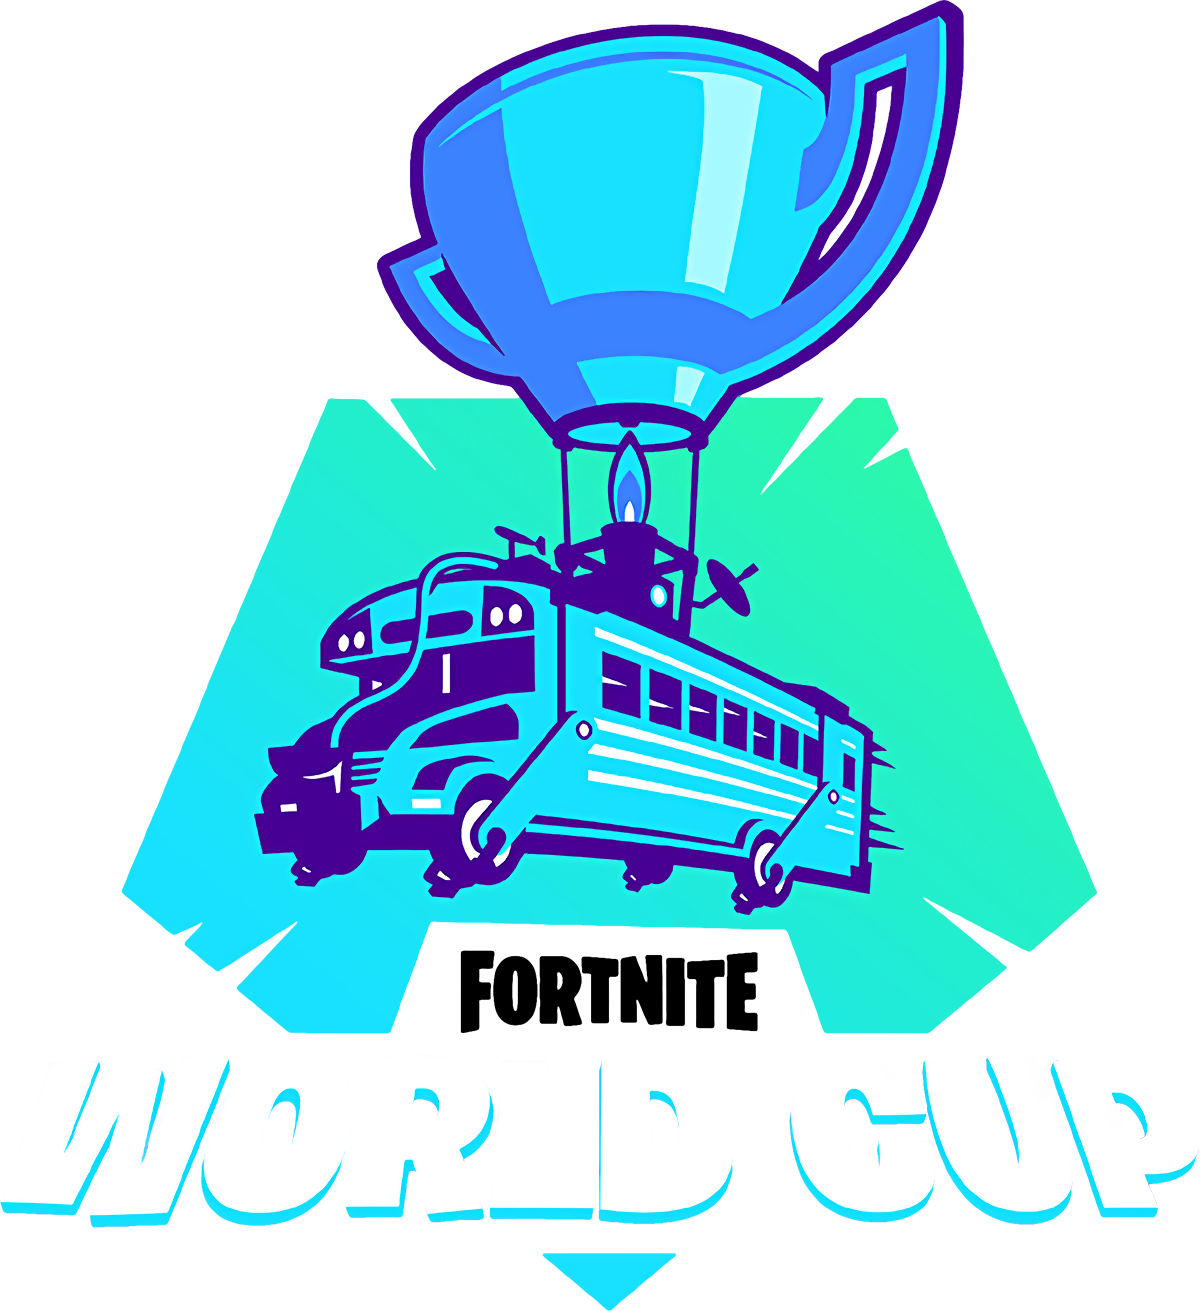 Pin By Gisela Ruiz Rodriguez On Dibujo In 2020 World Cup Logo World Cup Fortnite